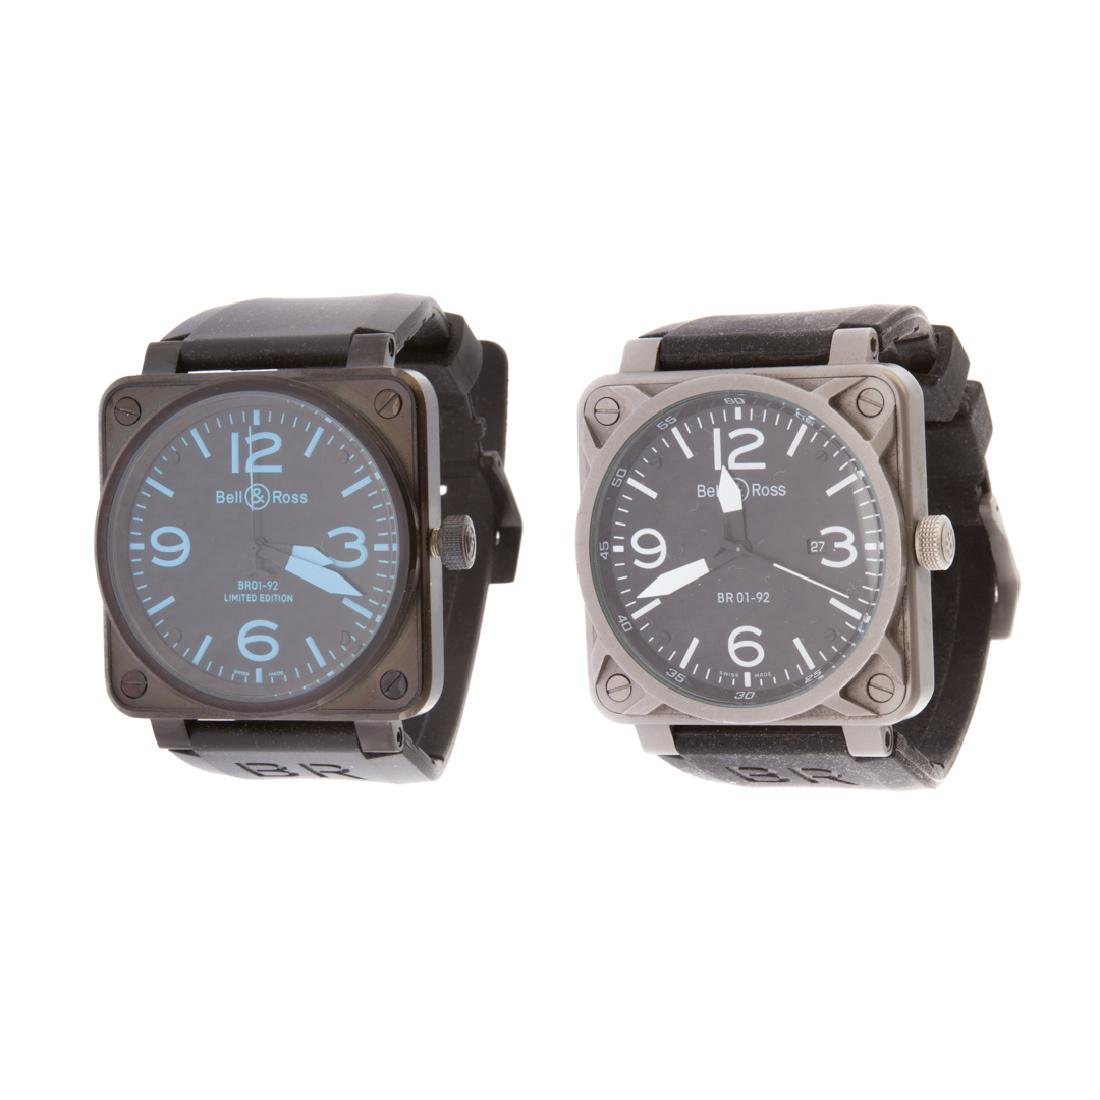 Two Gent's Bell & Ross Inspired Watches